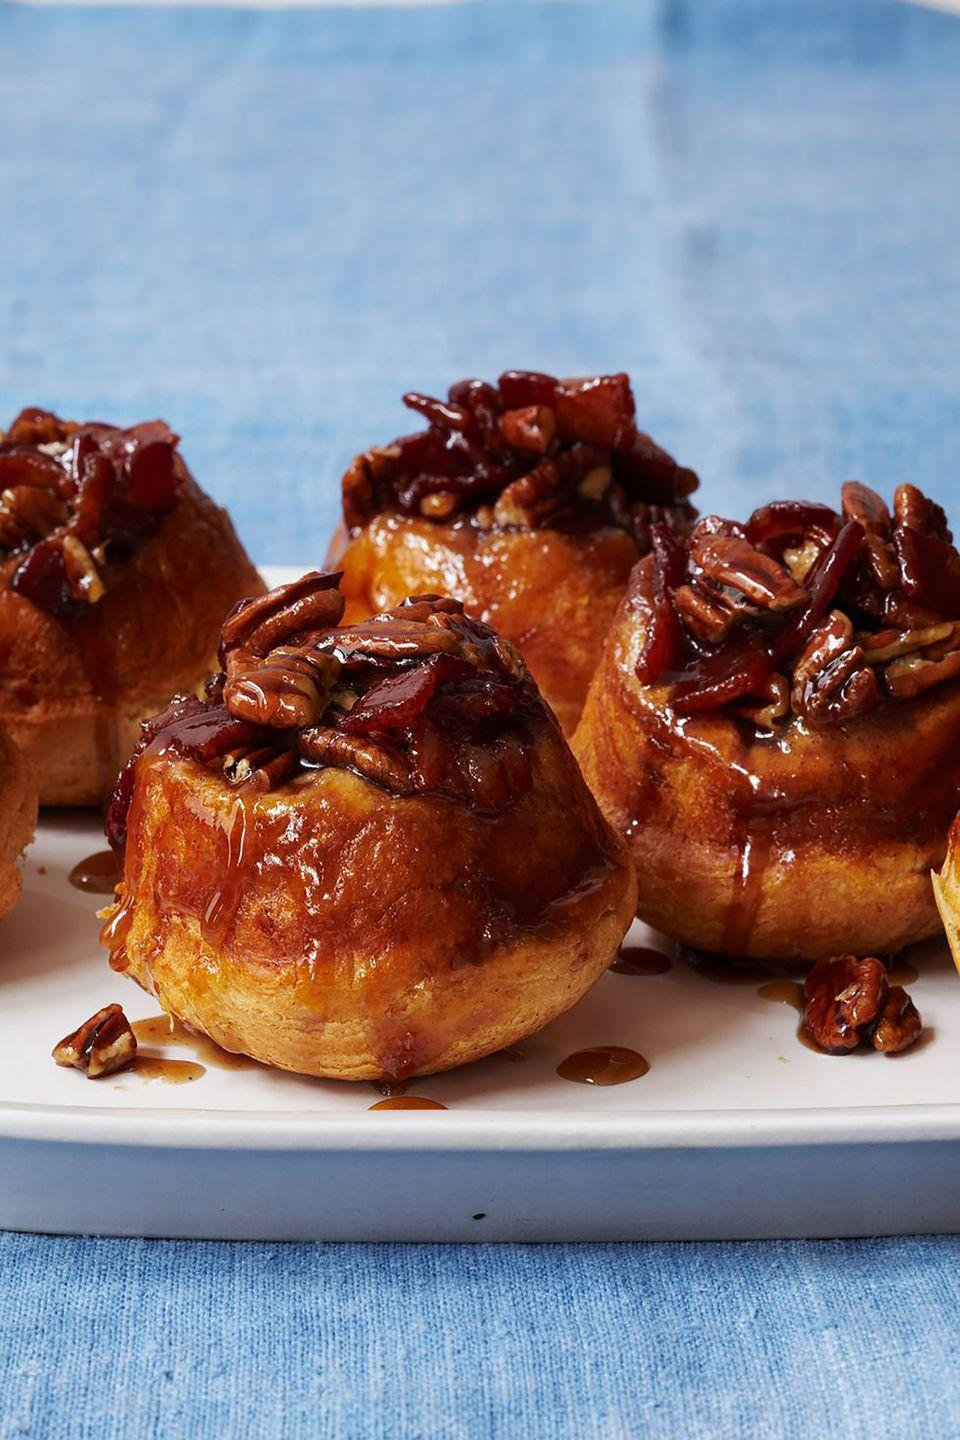 """<p>If Mom loves sweet<em> and</em> salty, she'll love these sticky buns. </p><p><a href=""""https://www.womansday.com/food-recipes/food-drinks/recipes/a12081/maple-bacon-pecan-buns-recipe-wdy0912/"""" rel=""""nofollow noopener"""" target=""""_blank"""" data-ylk=""""slk:Get the recipe for Maple, Bacon, and Pecan Sticky Buns."""" class=""""link rapid-noclick-resp""""><em>Get the recipe for Maple, Bacon, and Pecan Sticky Buns.</em></a> </p>"""